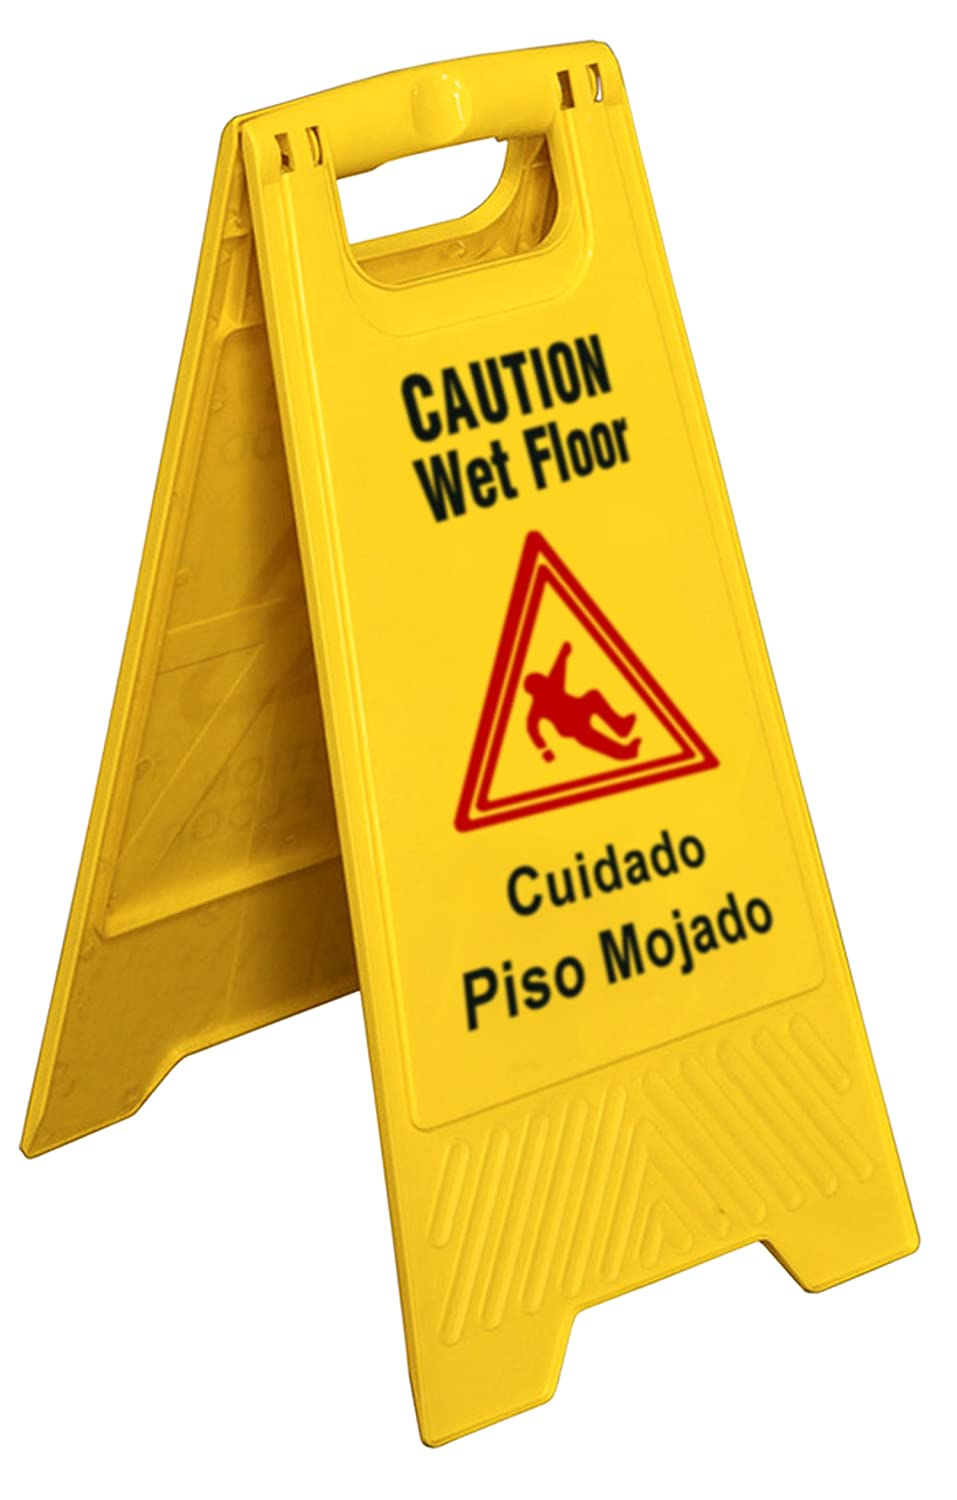 Amazing New Star Foodservice 54613 Safety Caution Wet Floor Sign English / Spanish  25 Inch: Kitchen Products: Amazon.com: Industrial U0026 Scientific